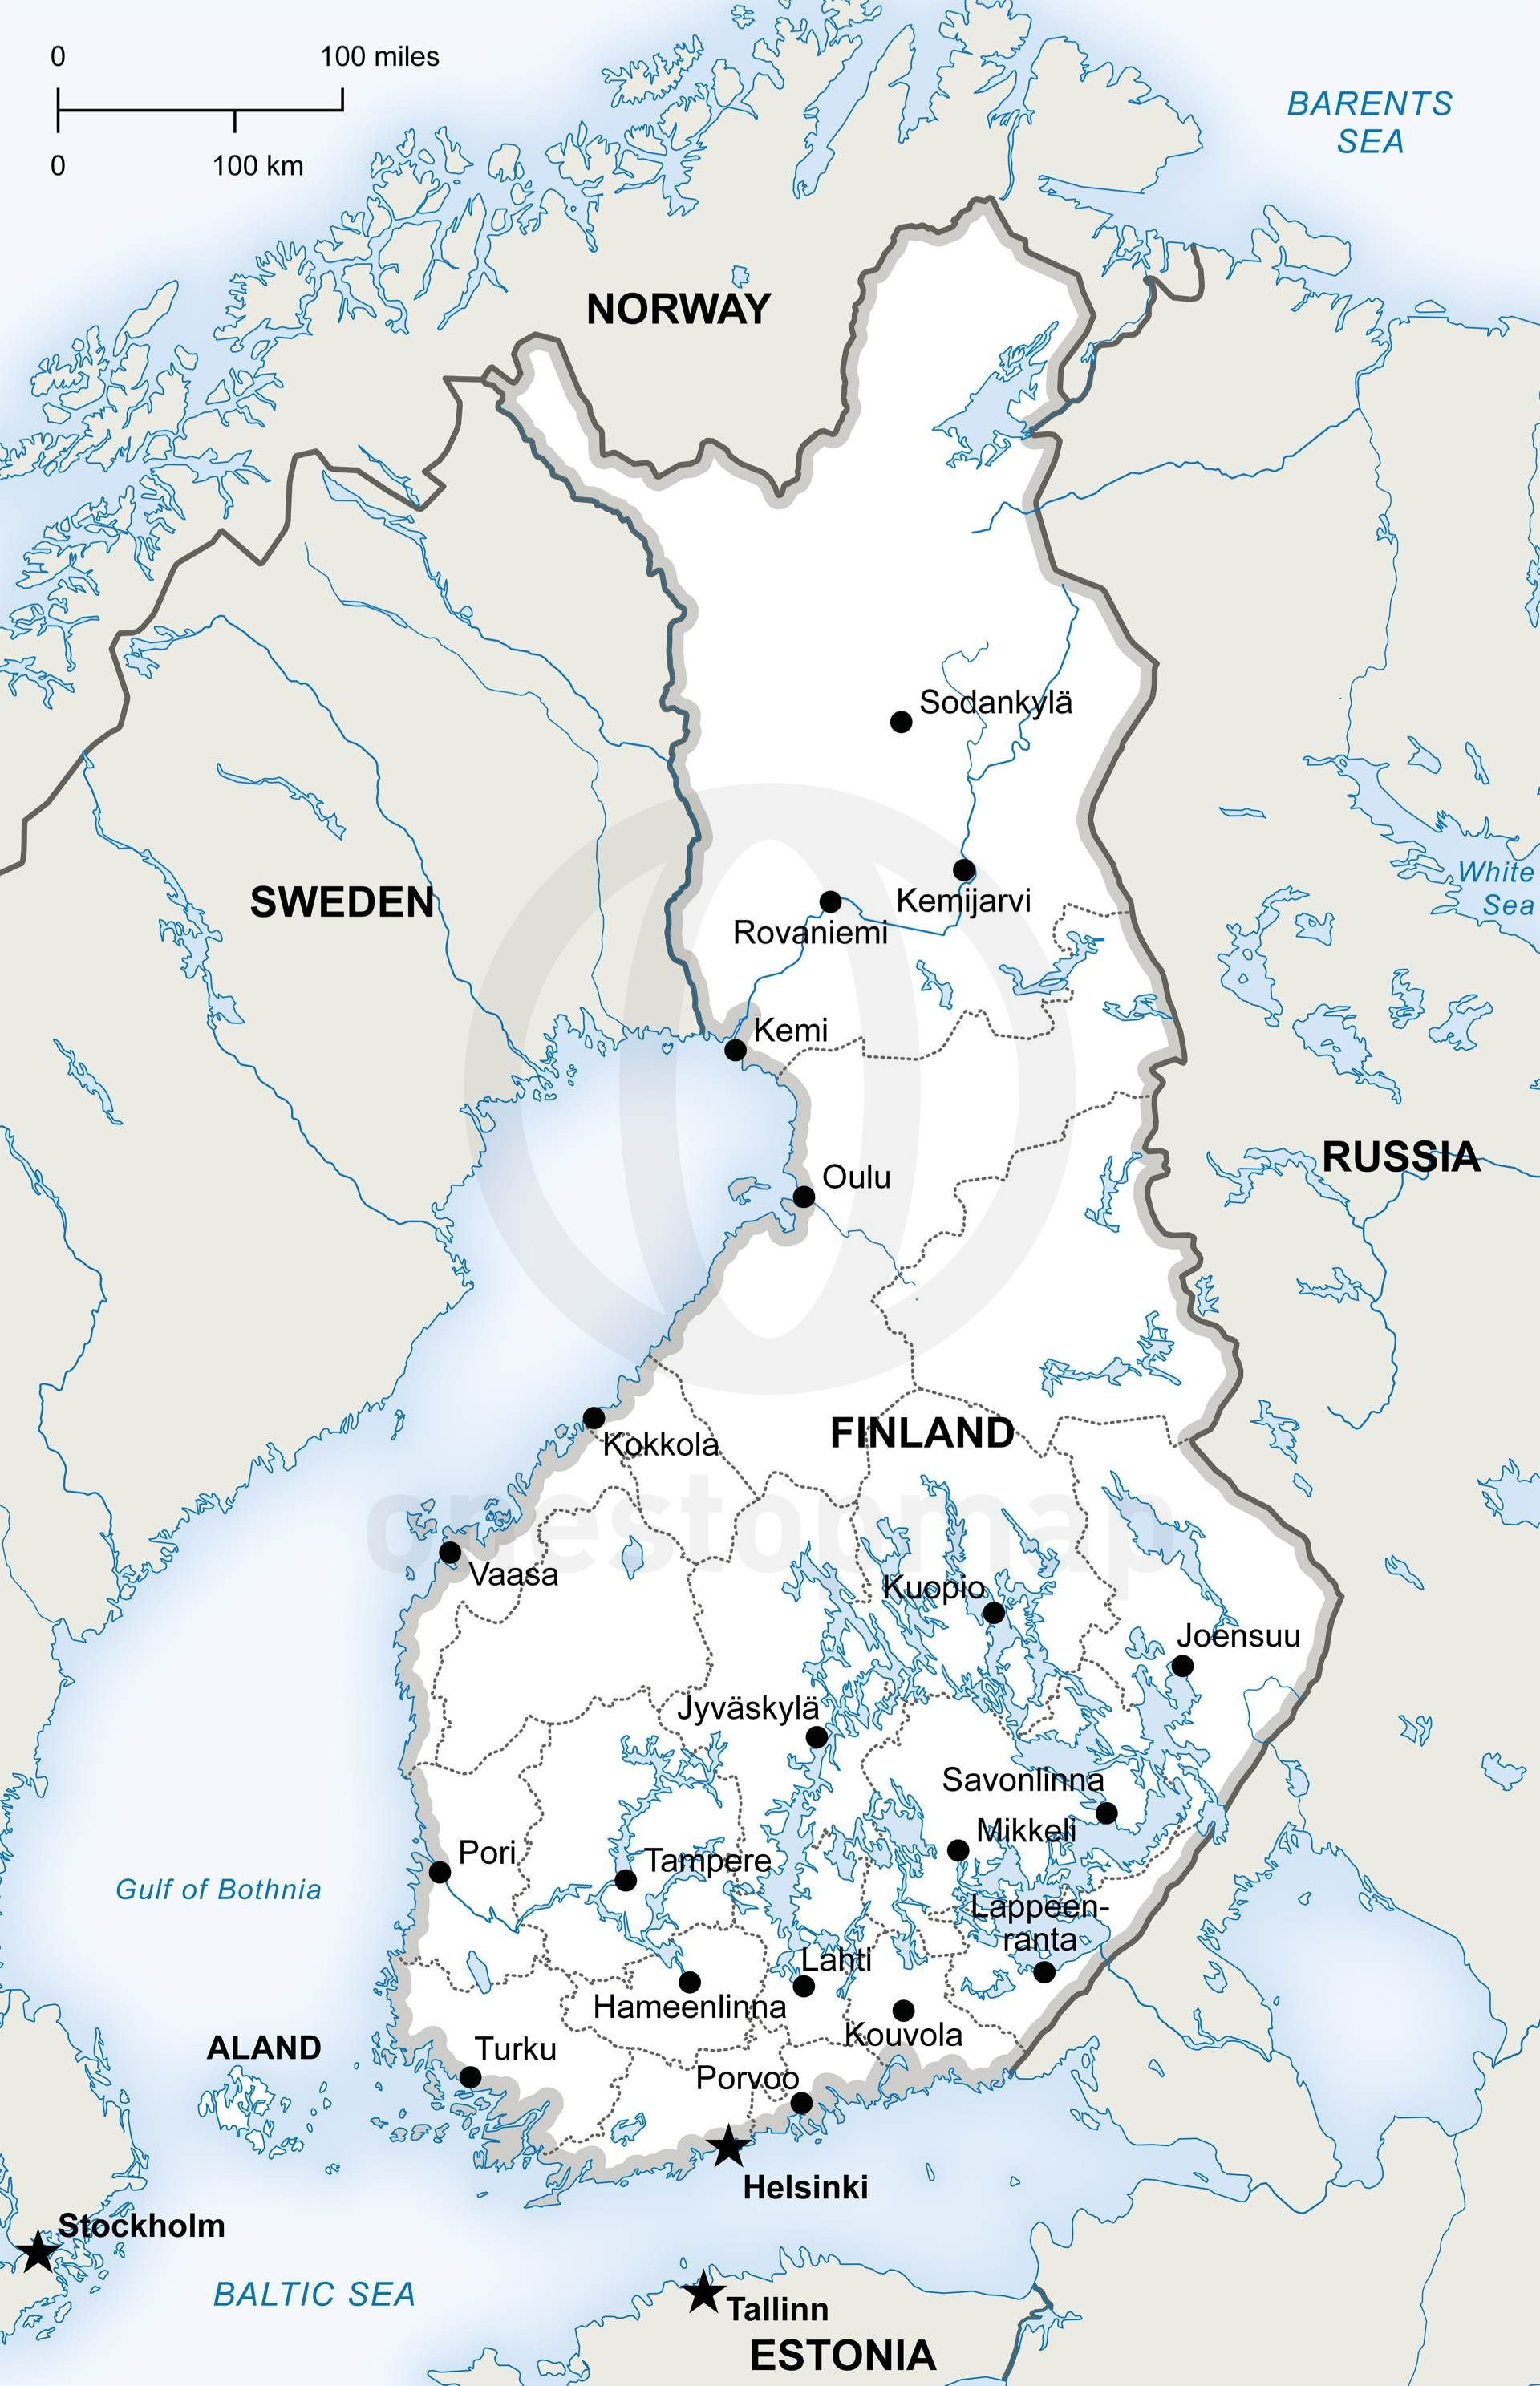 printable and editable vector map of finland political showing political boundaries on country and state